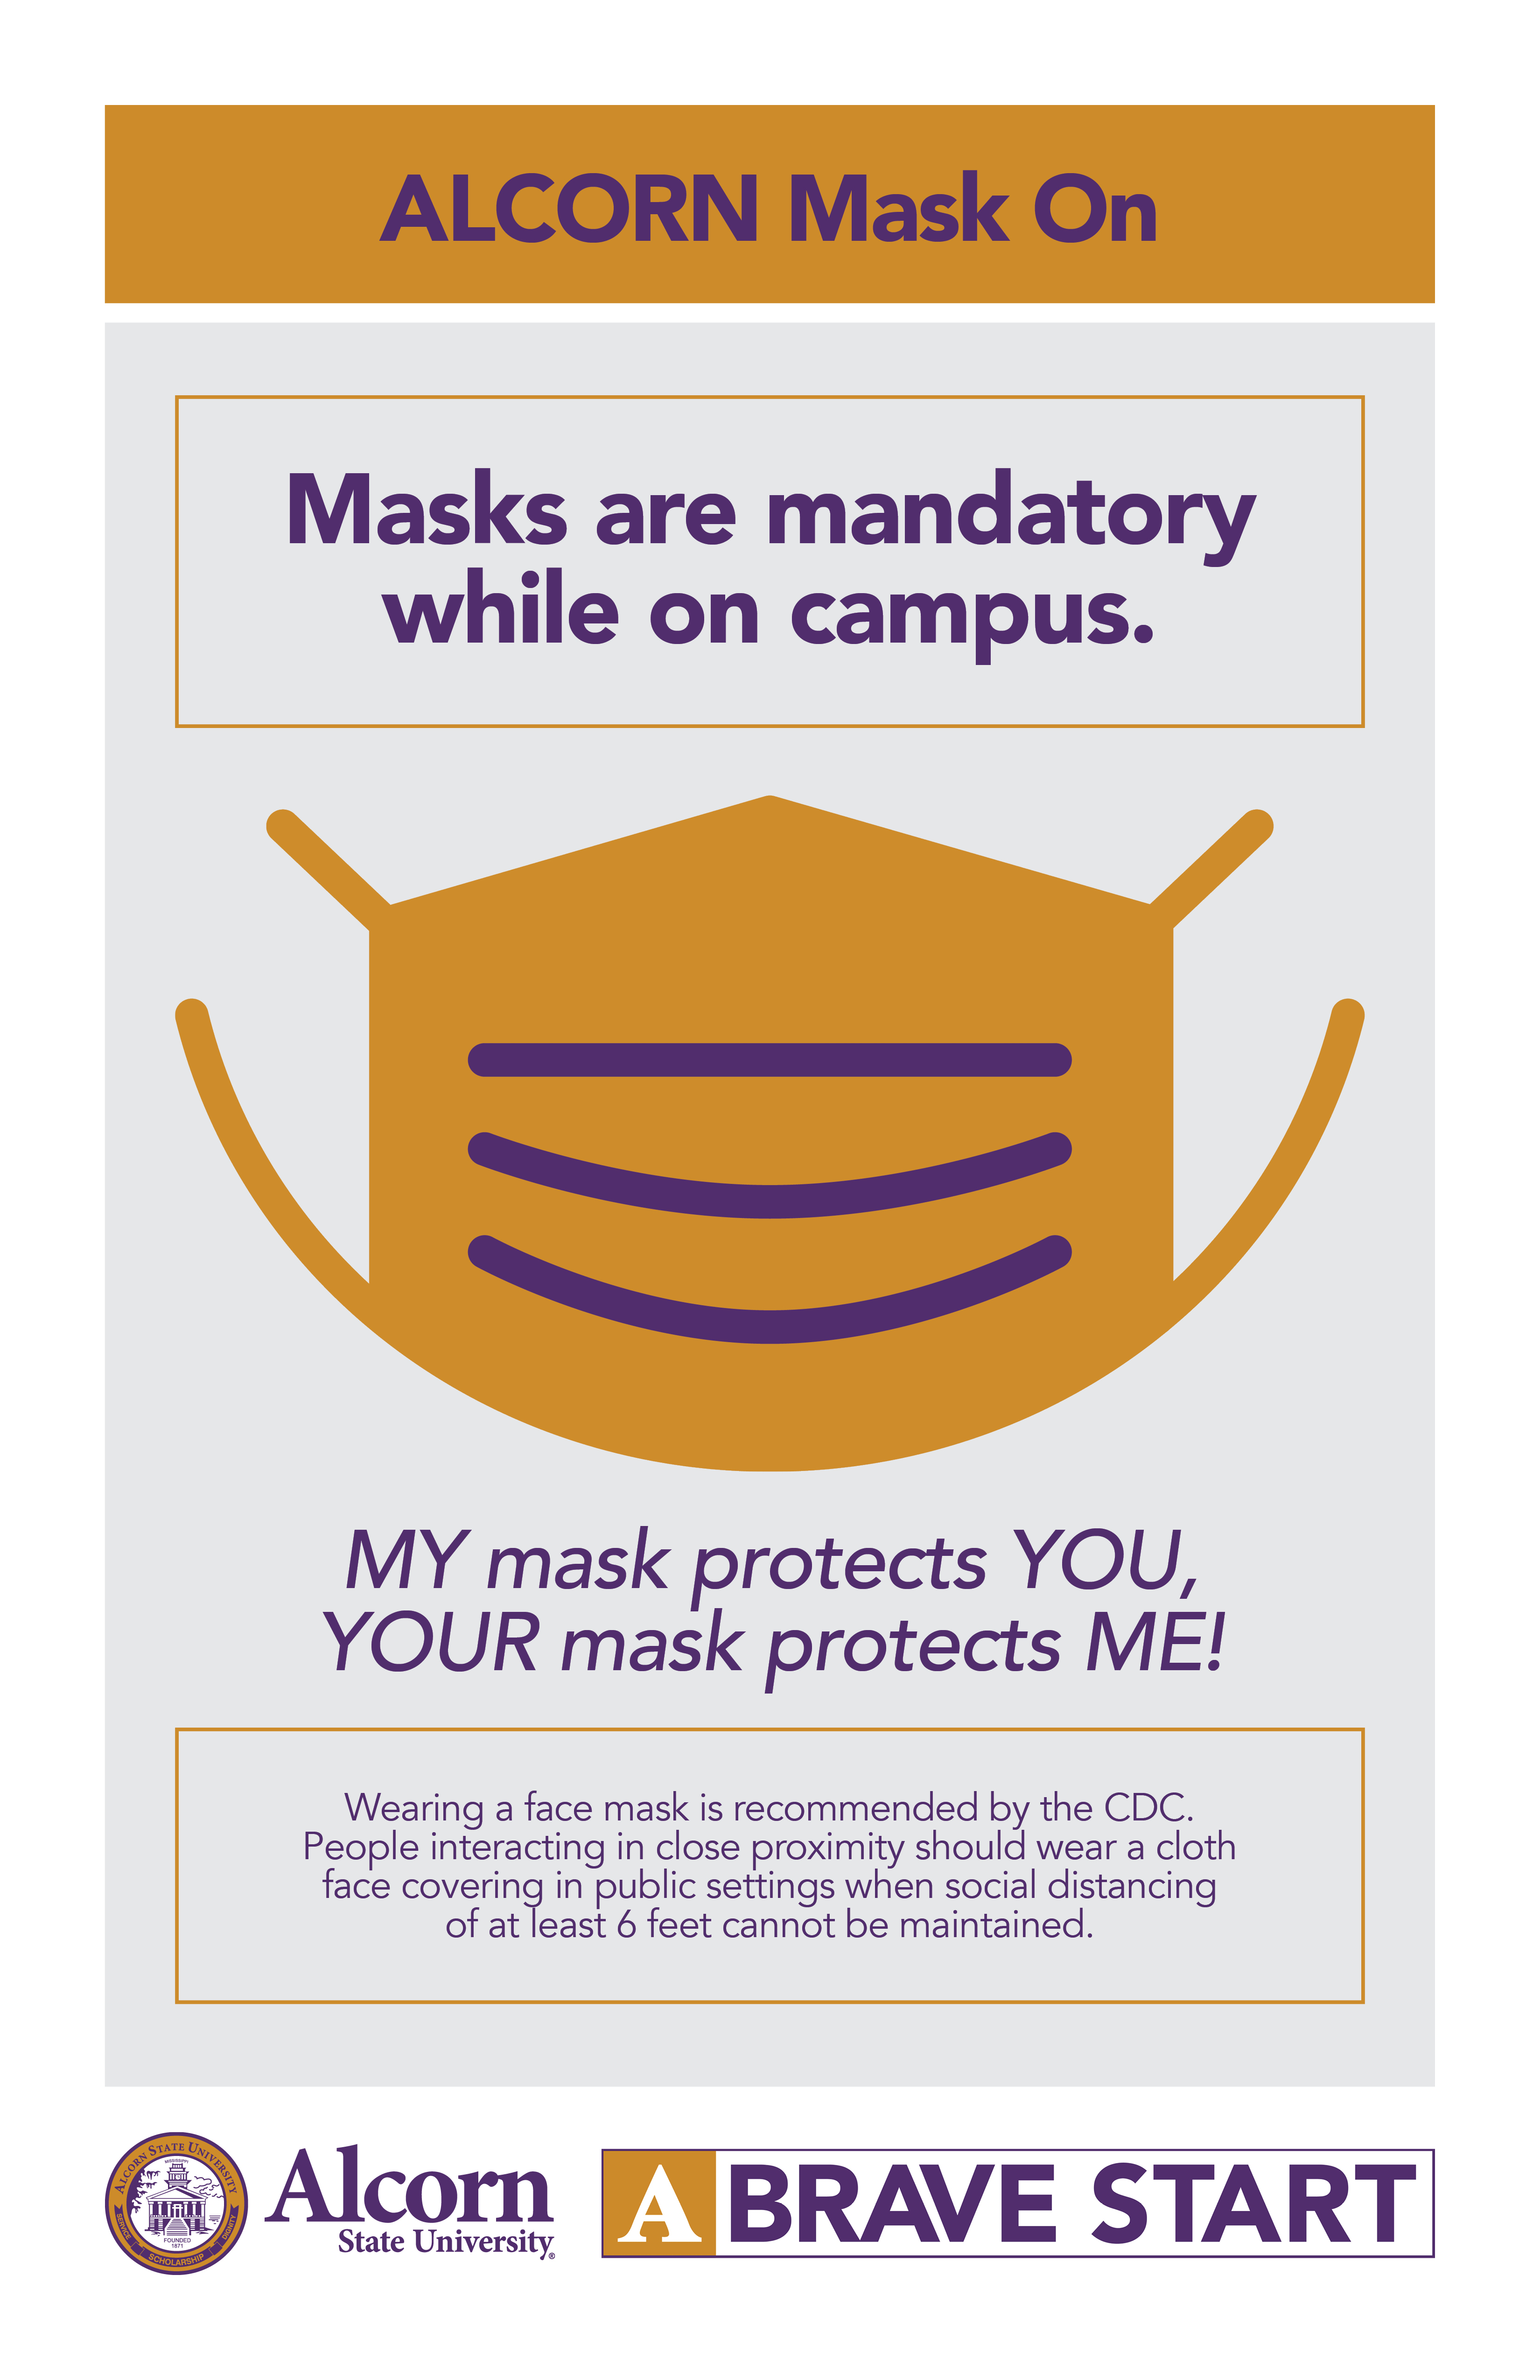 ALCORN Mask On. Masks are mandatory while on campus (Picture of a mask). MY mask protects YOU, YOUR mask protects ME! Wearing a face mask is recommended by the CDC. People interacting in close proximity should wear a cloth face covering in public settings when social distancing of at least 6 feet cannot be maintained. (Alcorn logo mark. A Brave Start logo mark.)